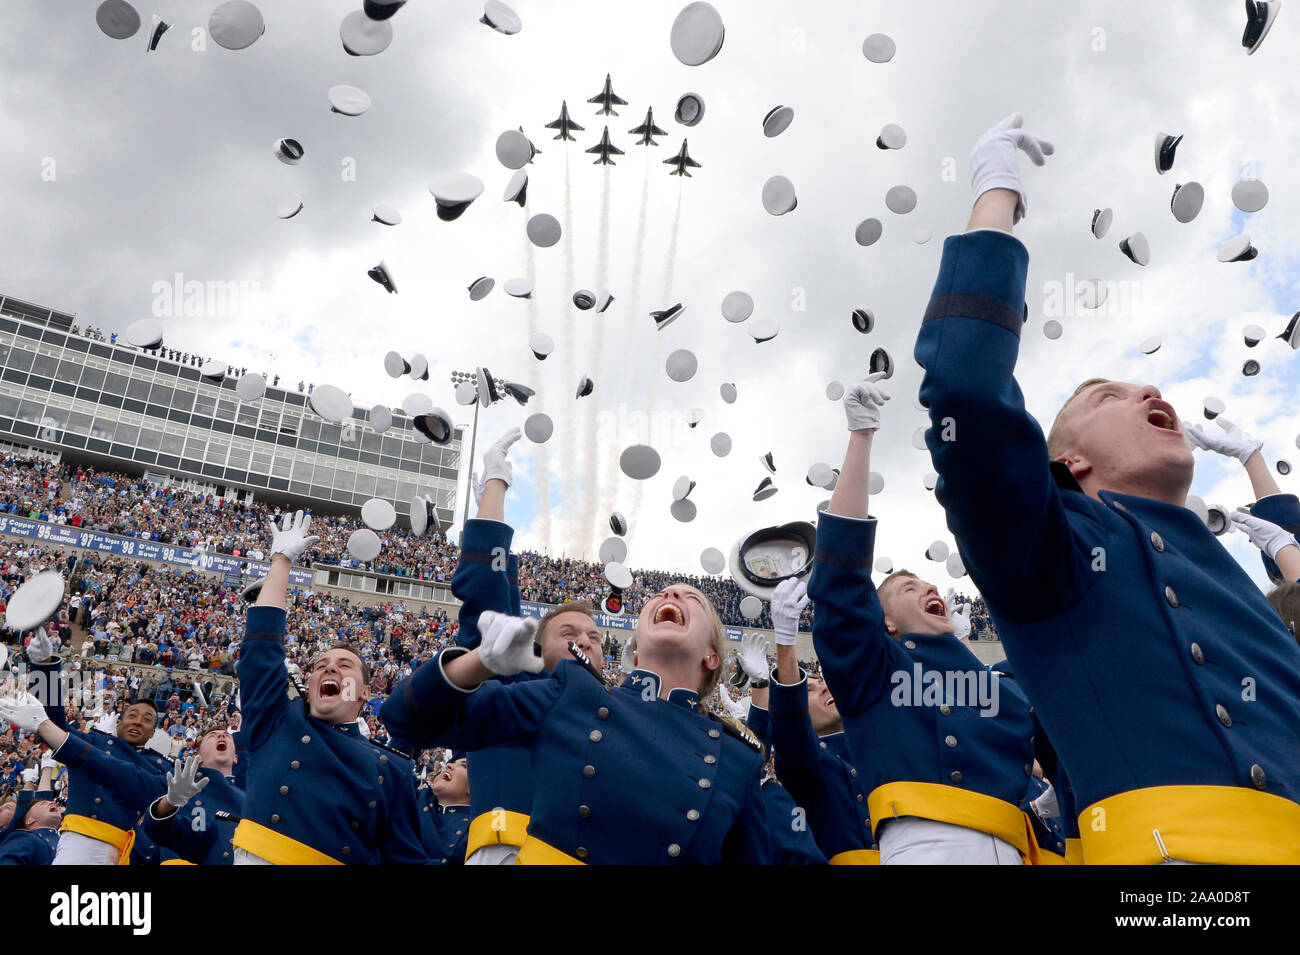 U.S. Air Force Academy Class of 2019 graduates toss their hats skyward as the U.S. Air Force Thunderbirds roar overhead during the graduation ceremony in Colorado Springs, Colo., May 30, 2019. During the ceremony 989 cadets crossed the stage to become the Air Force's newest second lieutenants. (U.S. Air Force photo by Darcie L. Ibidapo) Stock Photo